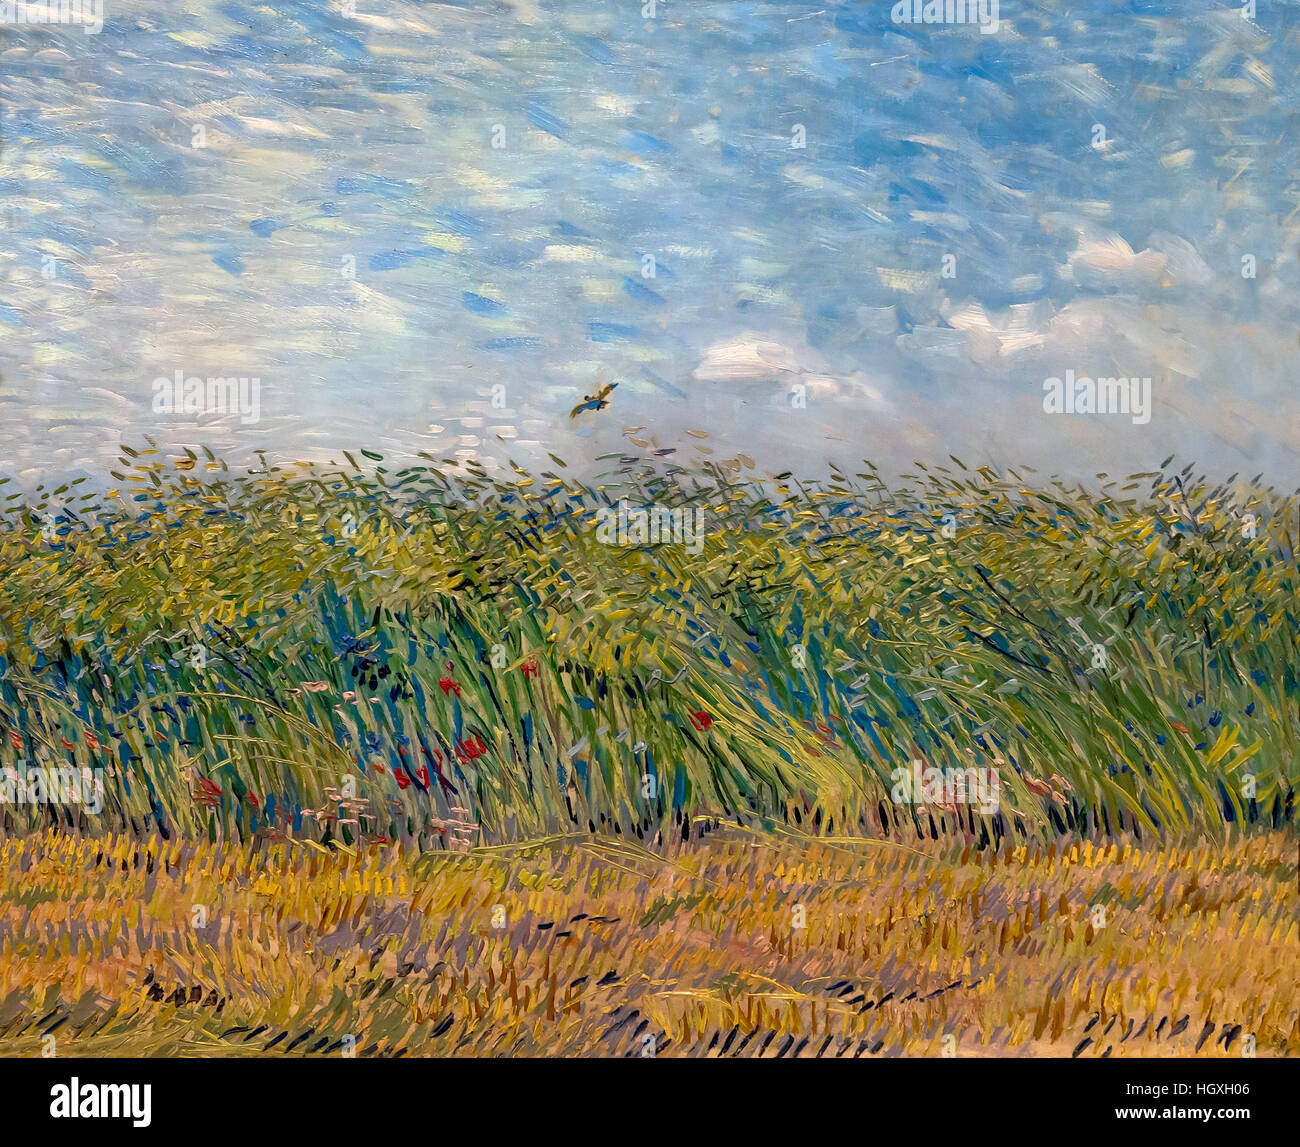 Wheat Field with a Lark,  by Vincent van Gogh, 1887, Netherlands, Europe - Stock Image